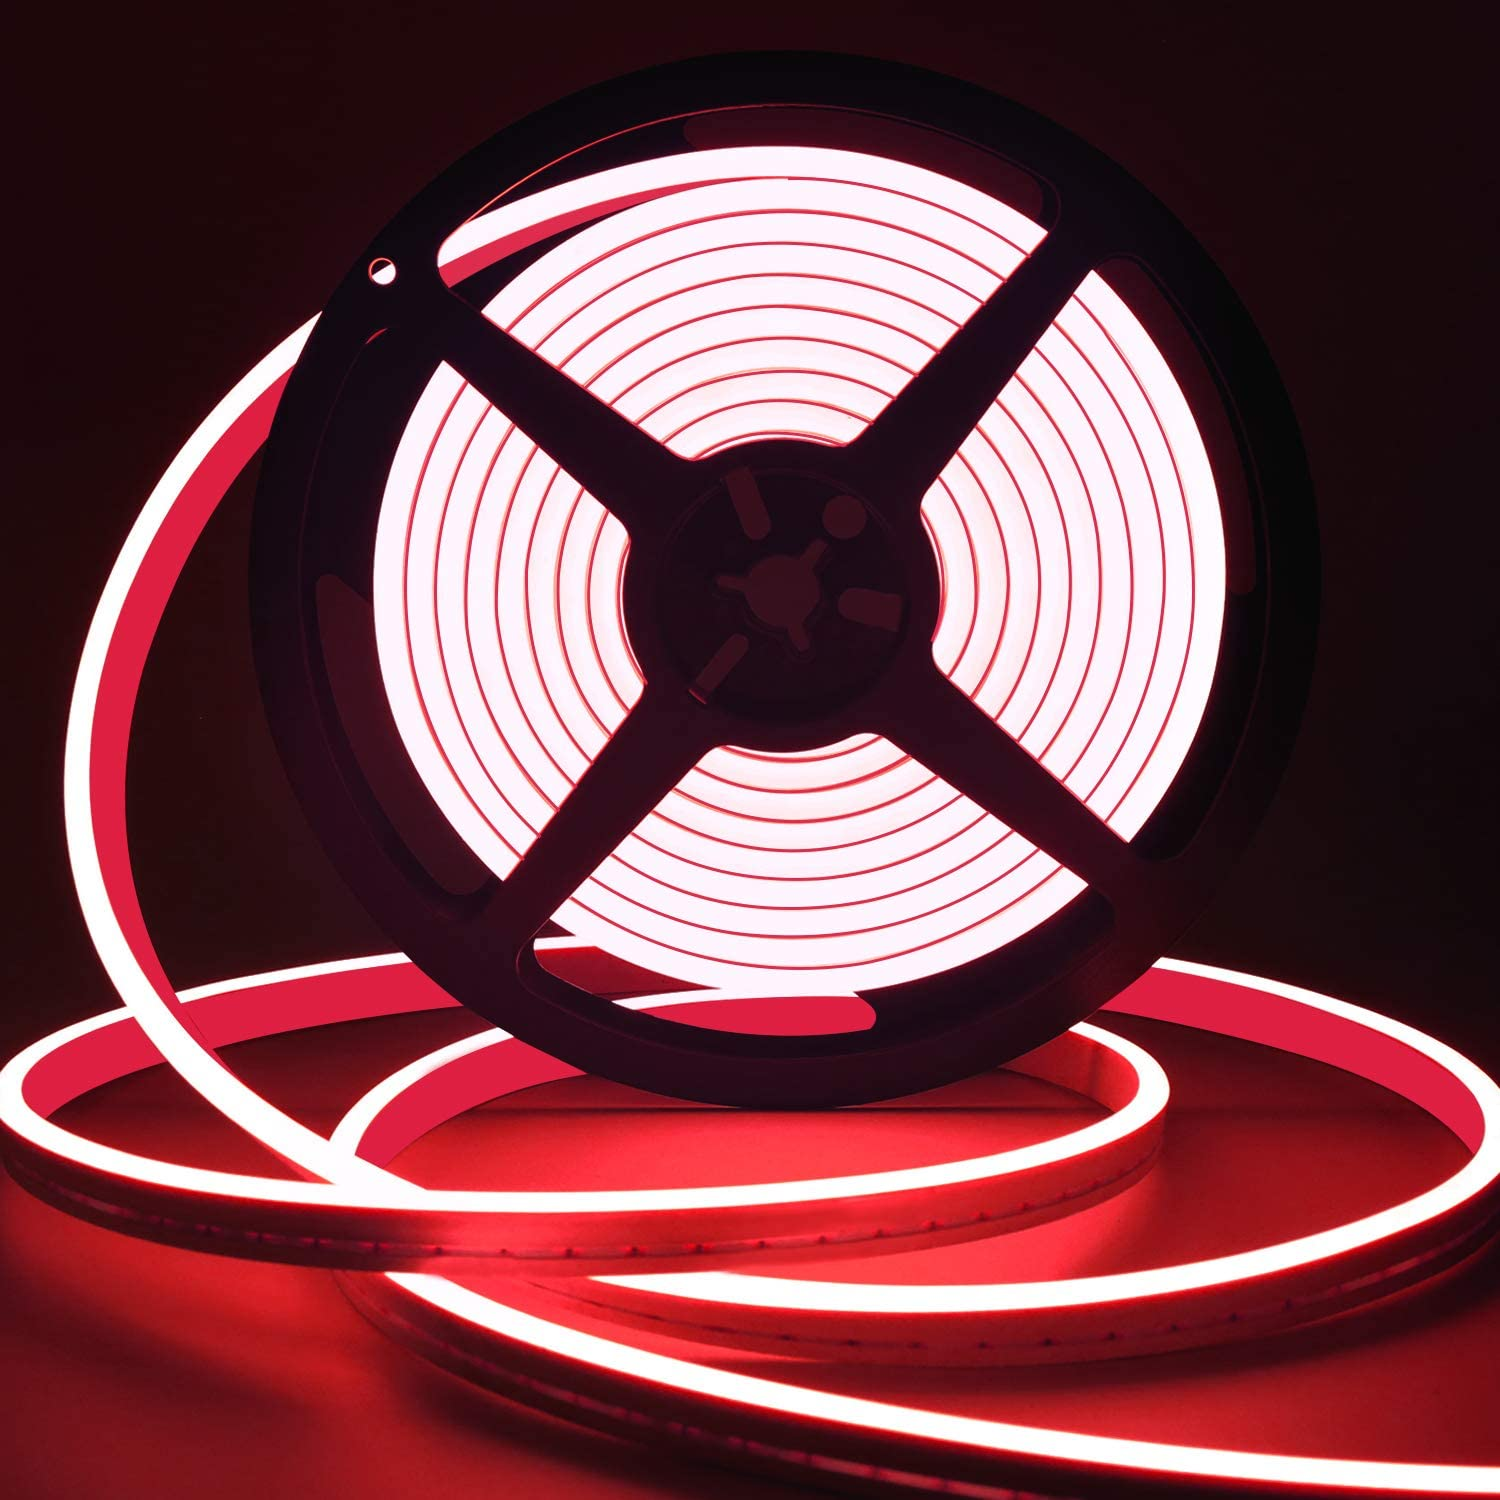 LED Strip Lights Red, Neon Rope Lights Outdoor Flexible Neon Light Rope IP65 Waterproof Silicone 12v LED Light Strip Red Heat-Resistant 16.4Ft for Indoor Outdoor Home Decoration (Red)